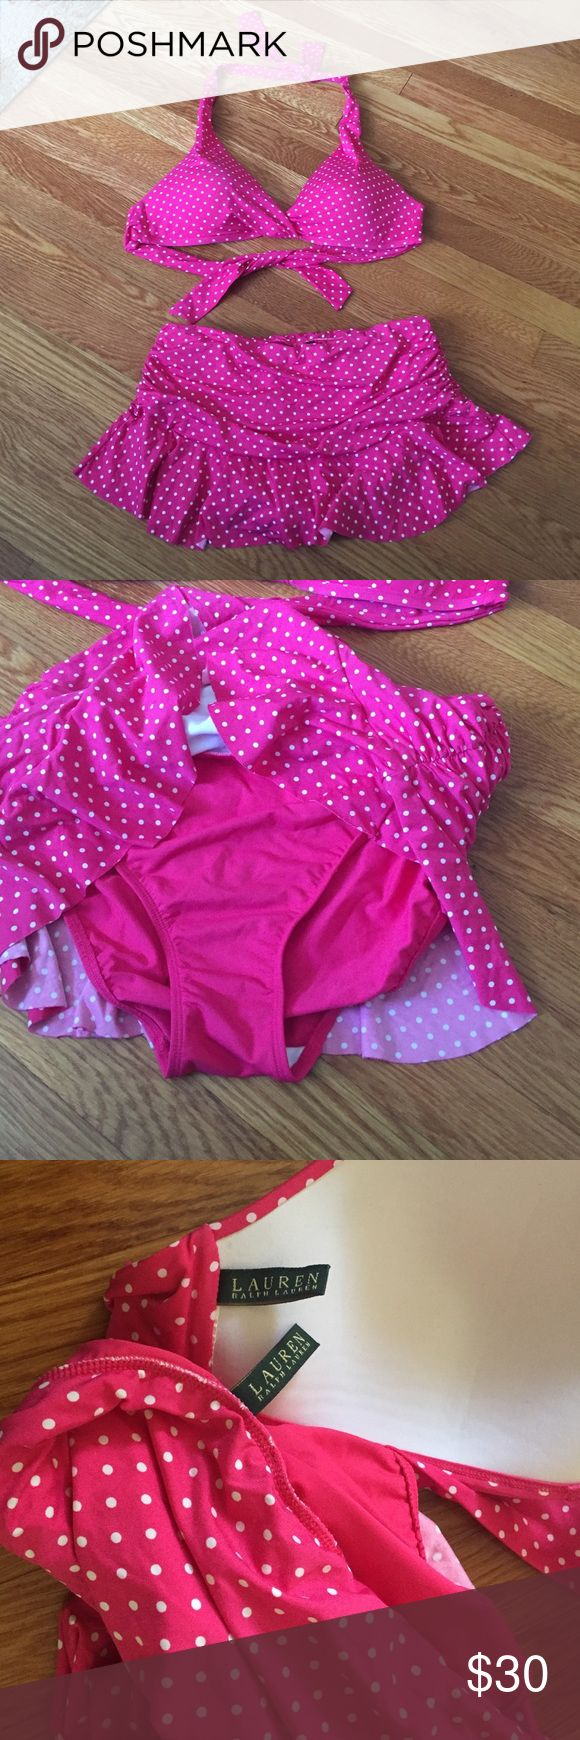 Ralph Lauren Bikini Never worn! NW/oT. Beautiful Ralph Lauren bikini. Pink with little white polka dots. Full coverage style bikini top. The bottom is a skirt with a bikini bottom attached to the inside. Perfect condition, except that I cut off the tags with the size. I would say it's a large/extra large. Lauren Ralph Lauren Swim Bikinis